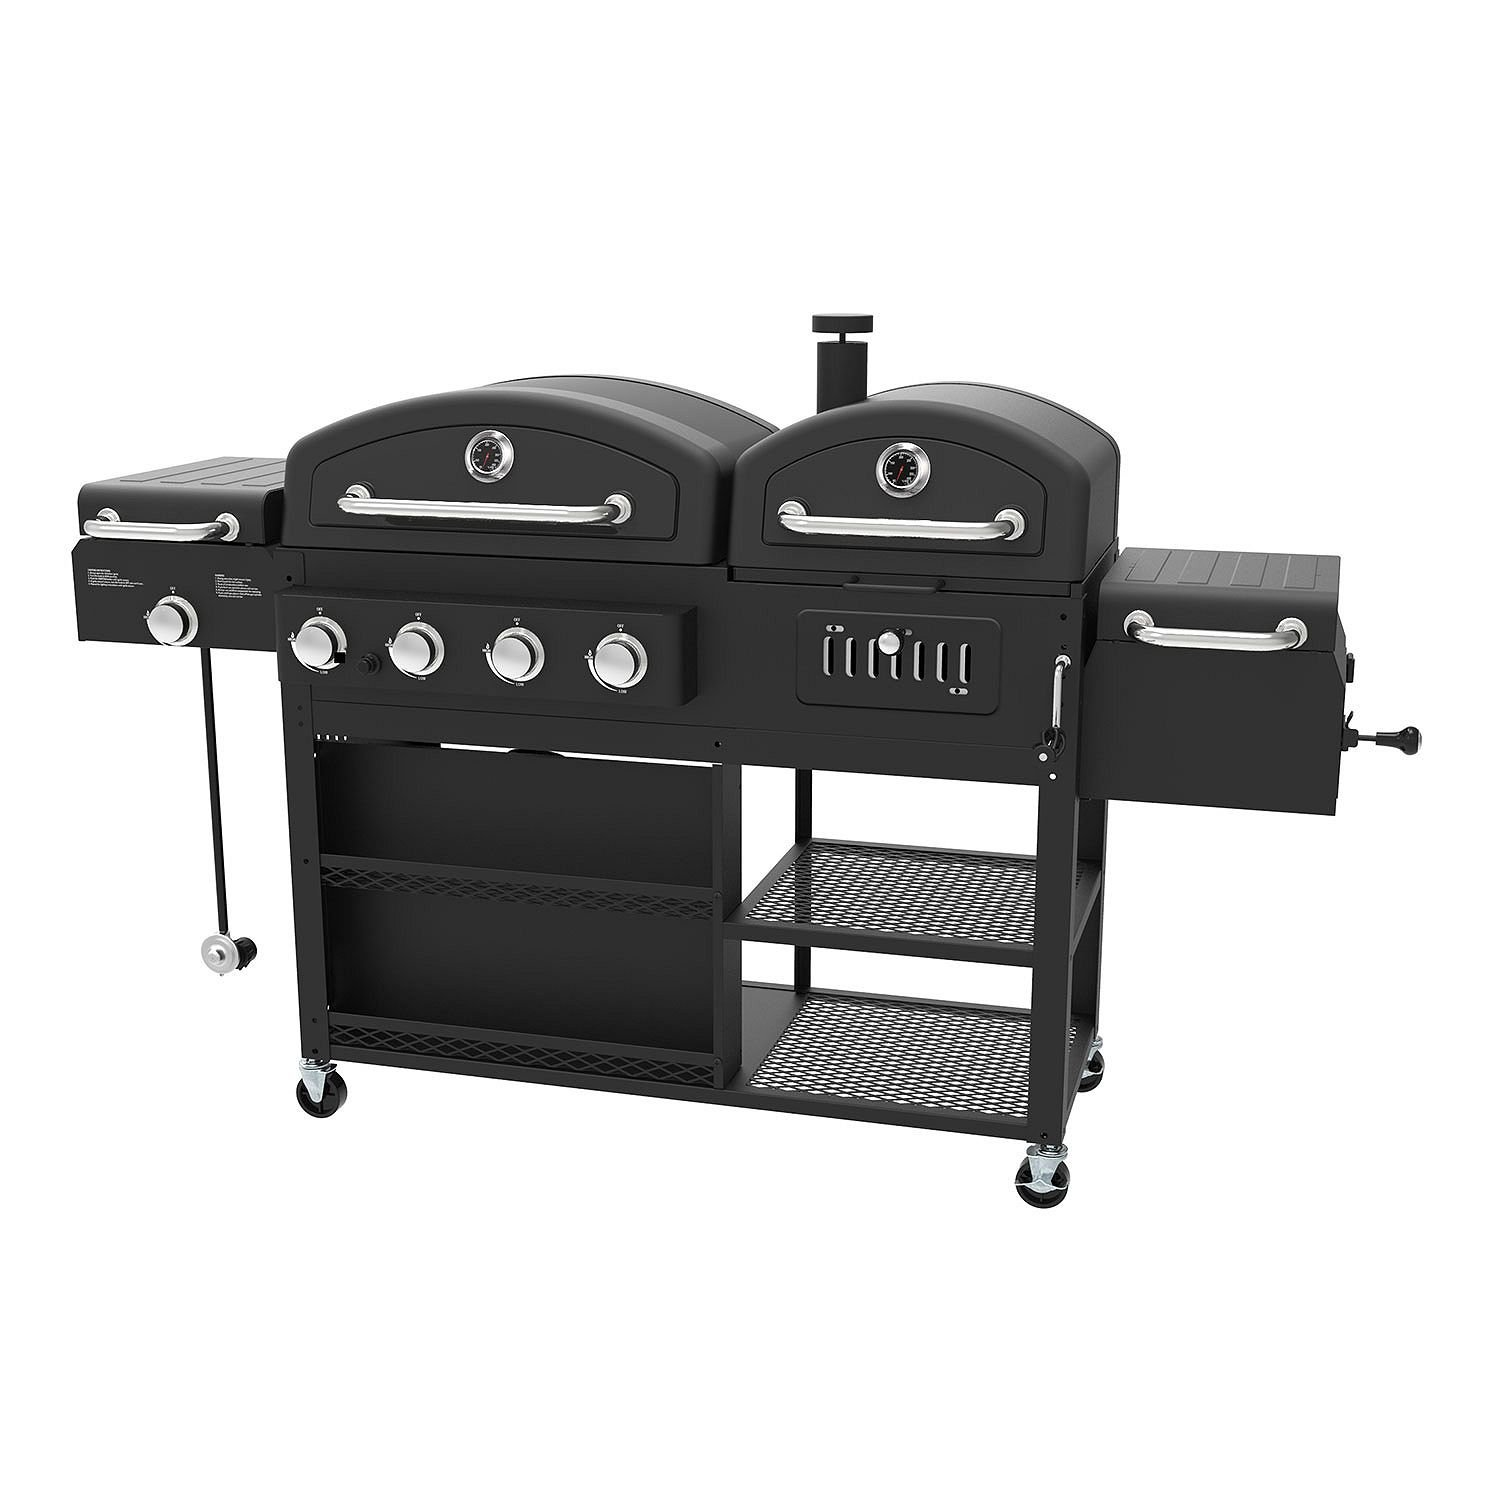 3. Smoke Hollow PS9900 4-in-1 LP Gas Charcoal Smoker Searing BBQ Grill